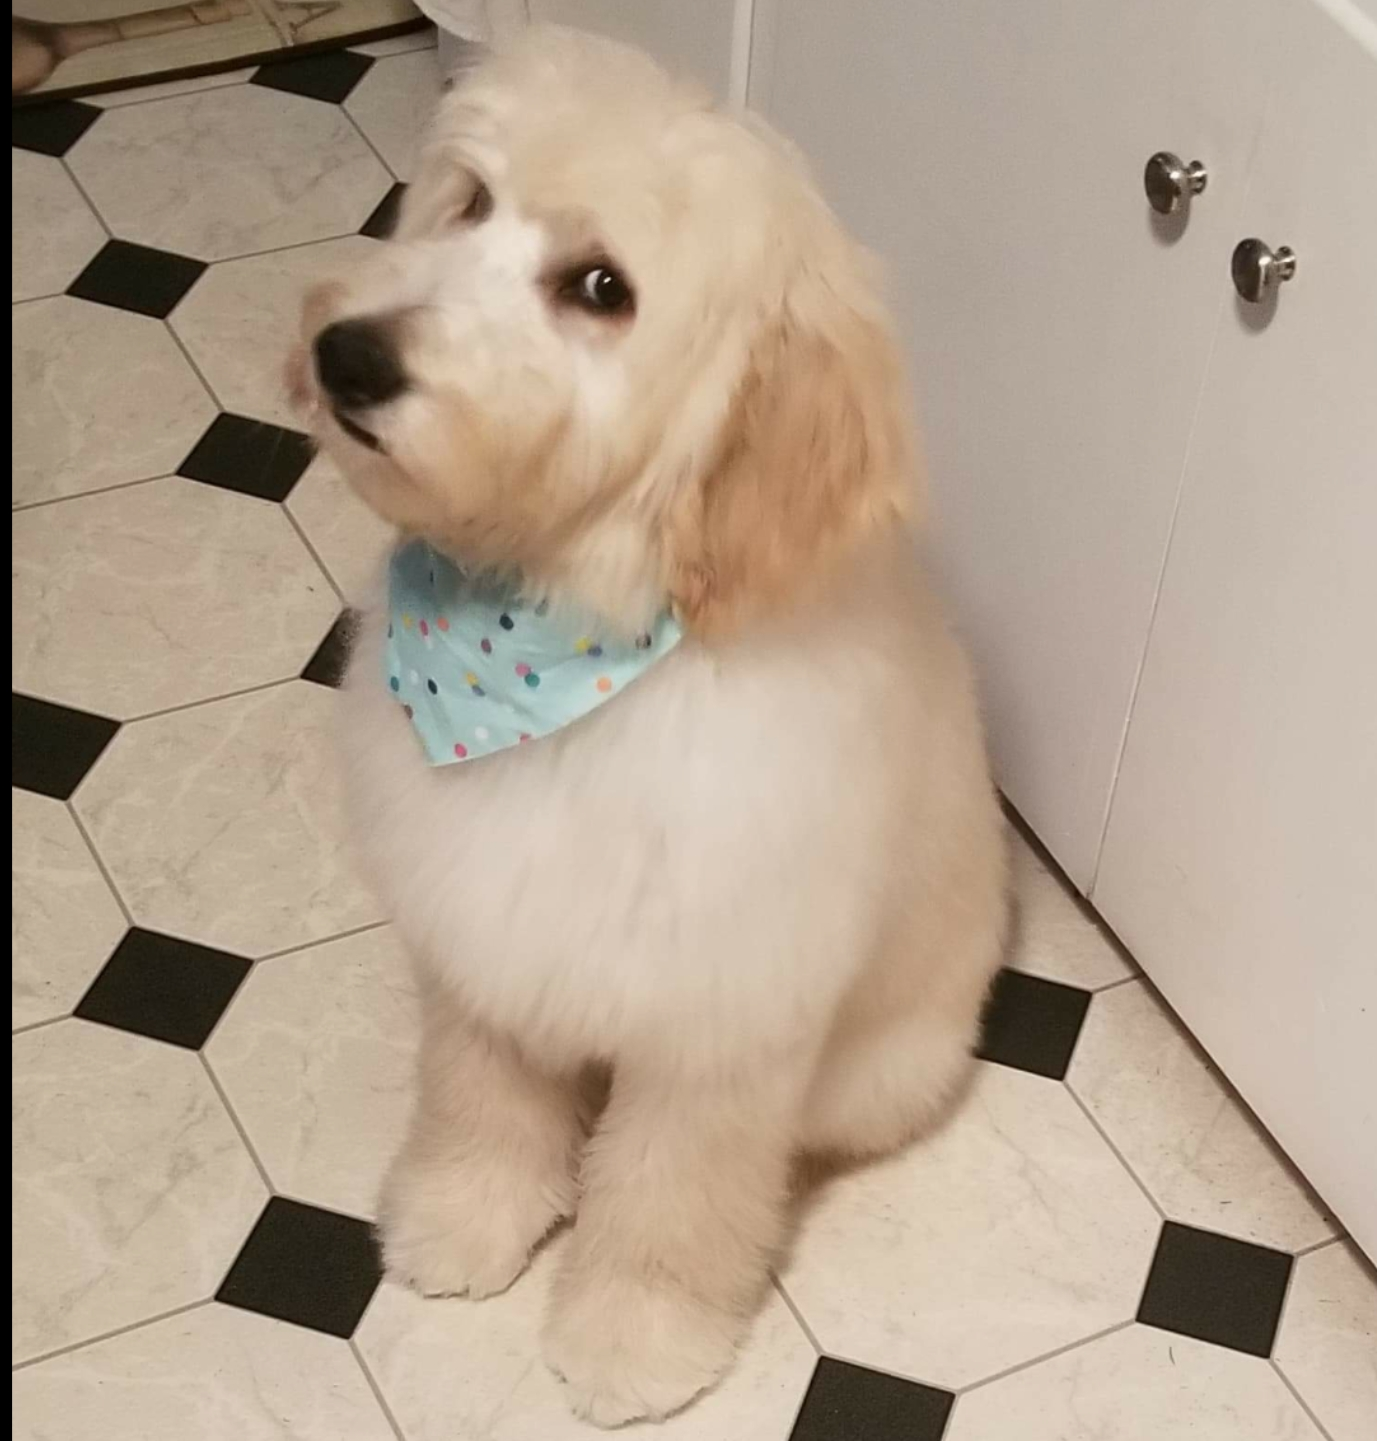 Bear and Claire Doodle!! He is 5 months old in this picture and lives with his family over by Topeka! Look at that soft nonshedding fur coat!